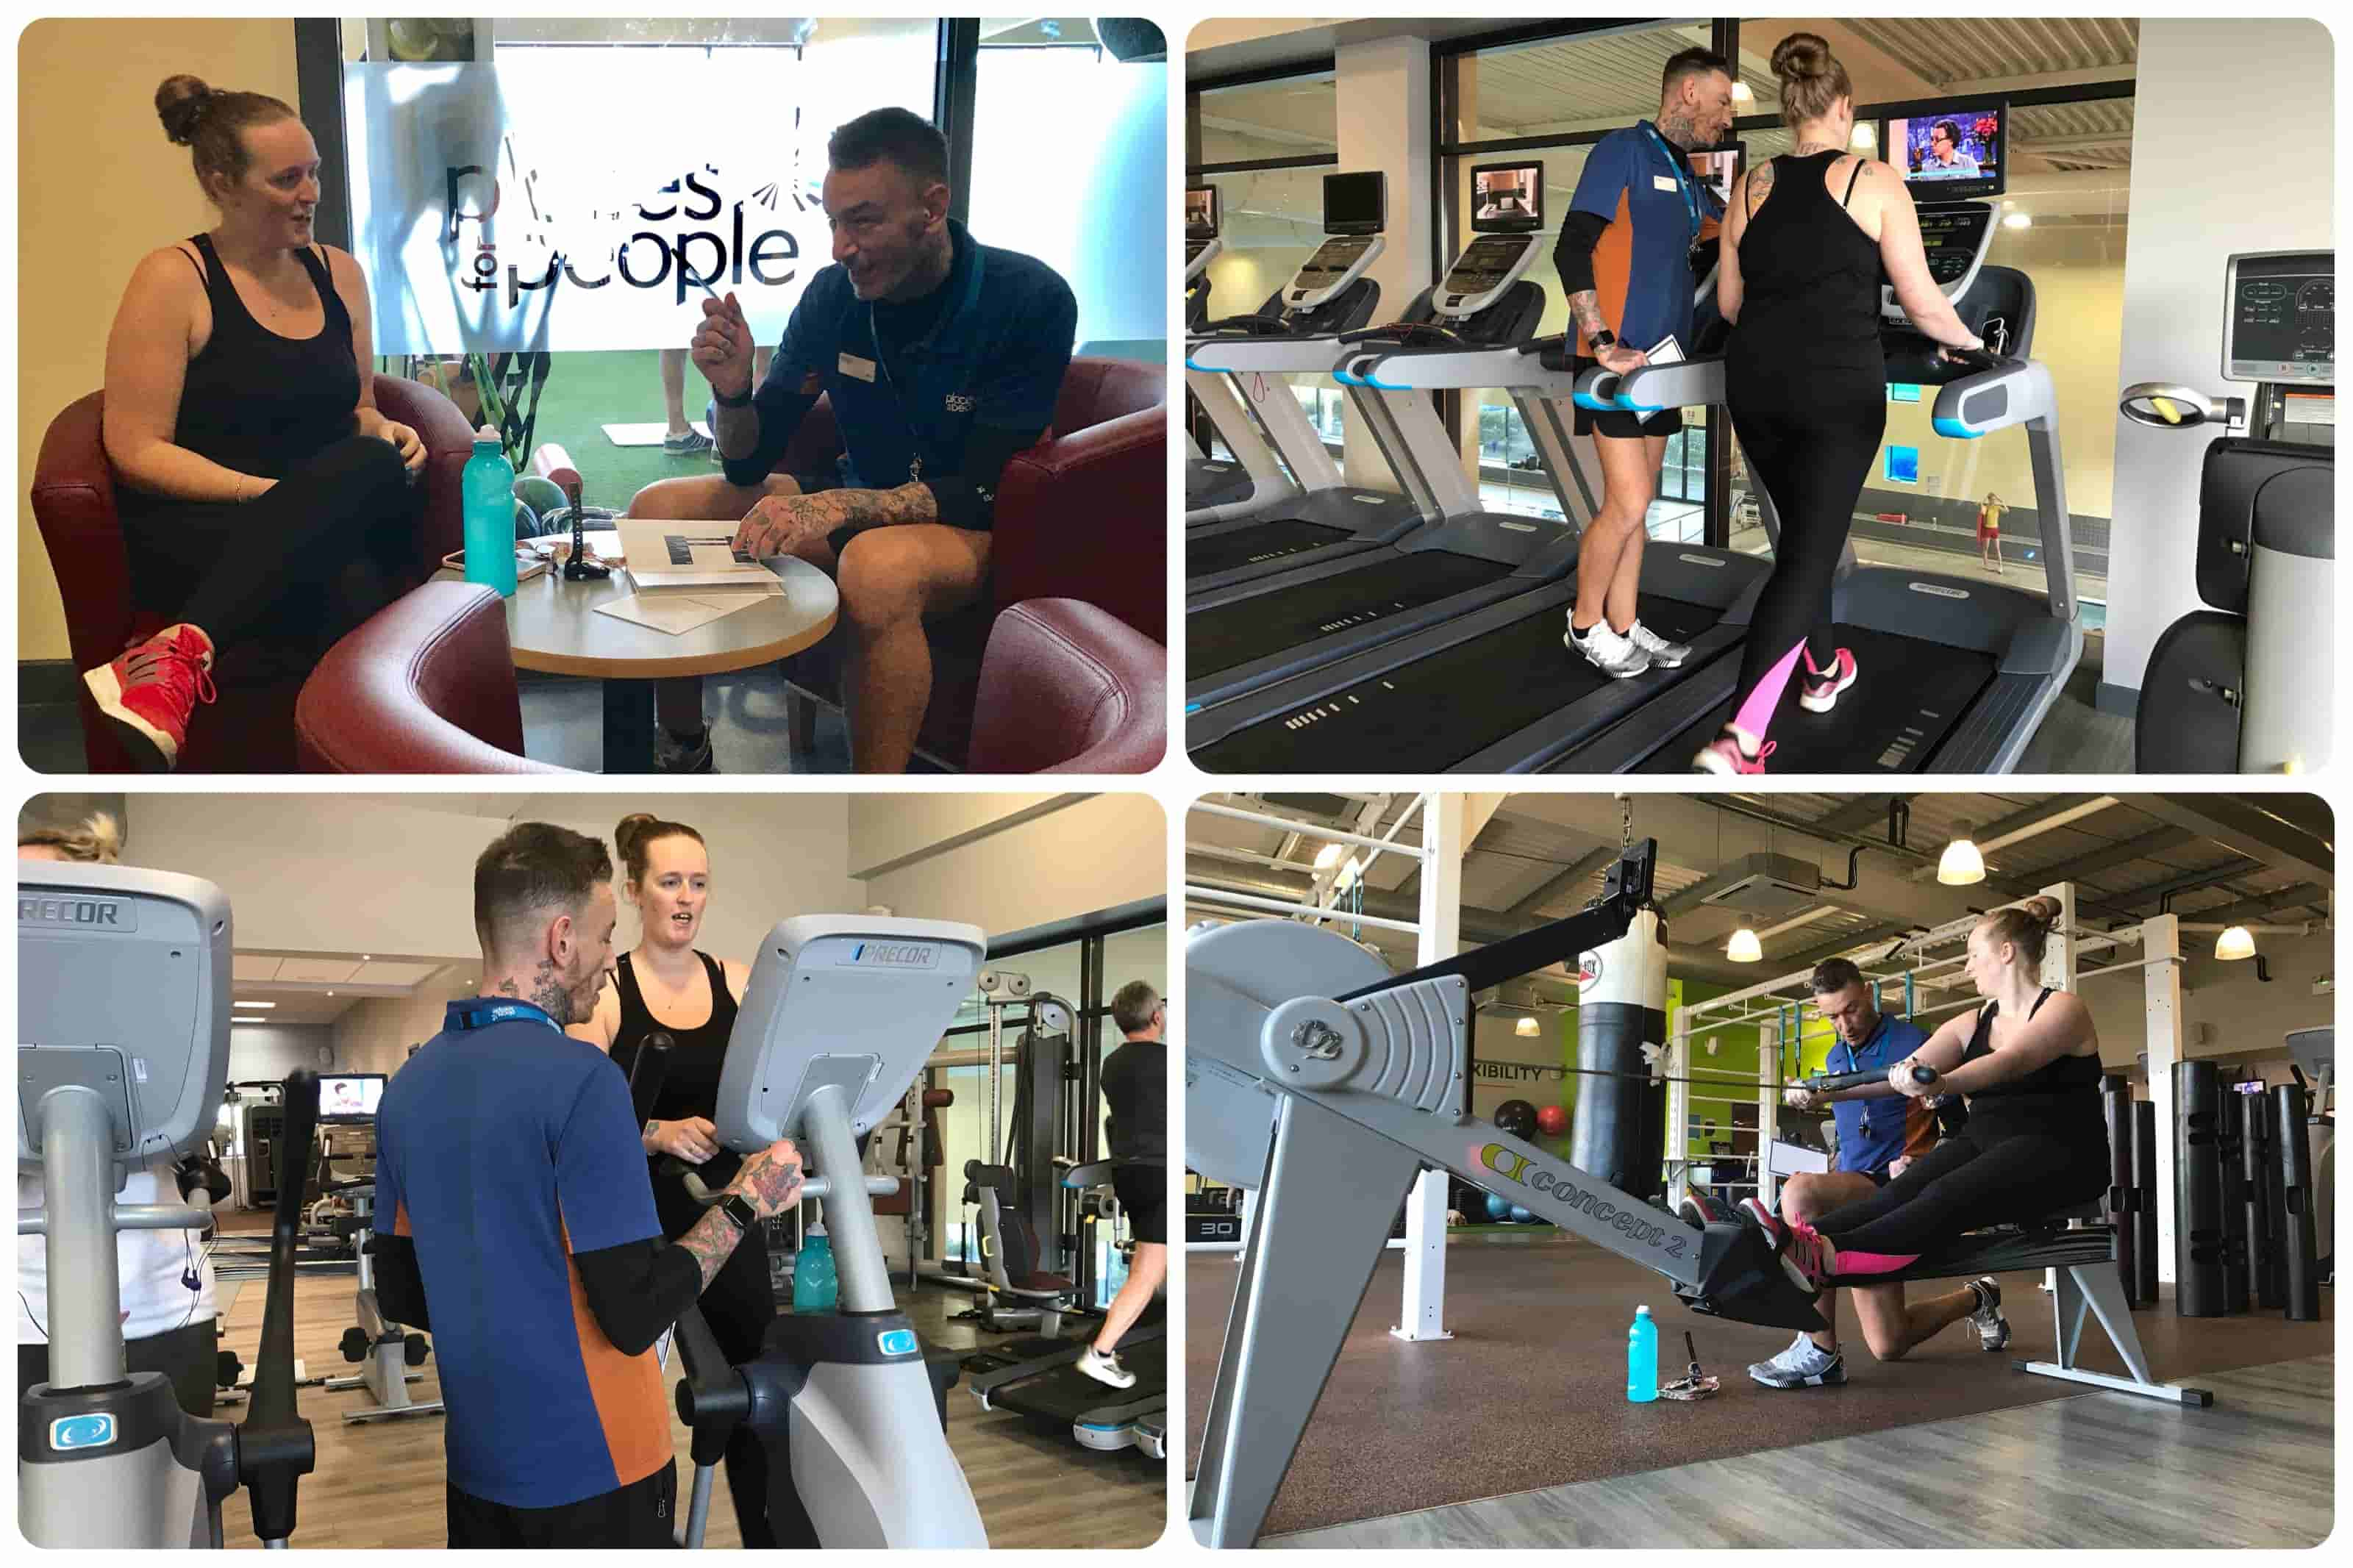 montage of photos showing john & layla working out